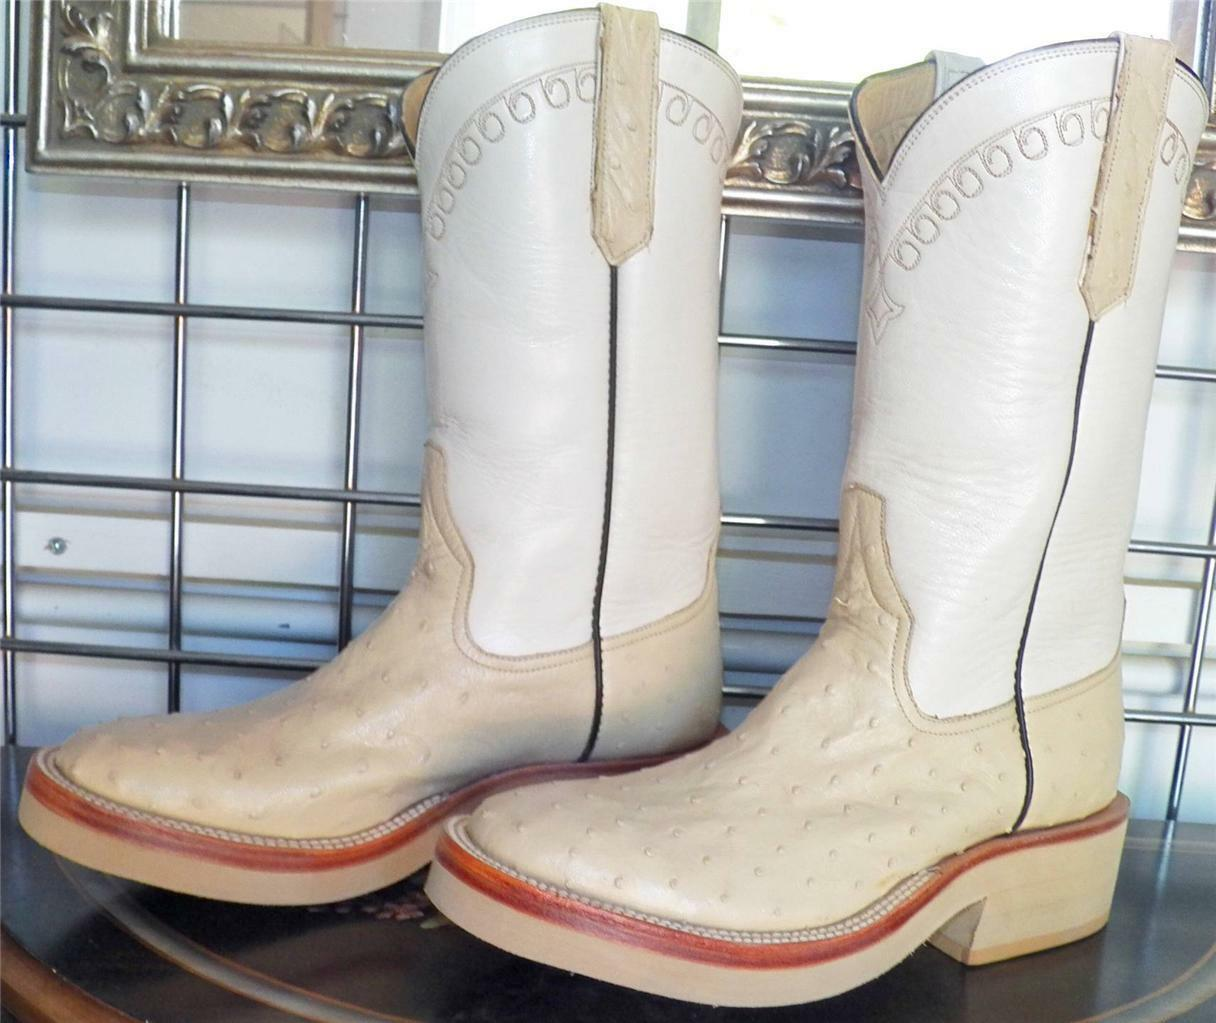 Rios of Mercedes Winter White Full Quill Ostrich Cowboy Ladies Boots 5D Ladies Cowboy 6 to 6.5 7a5471